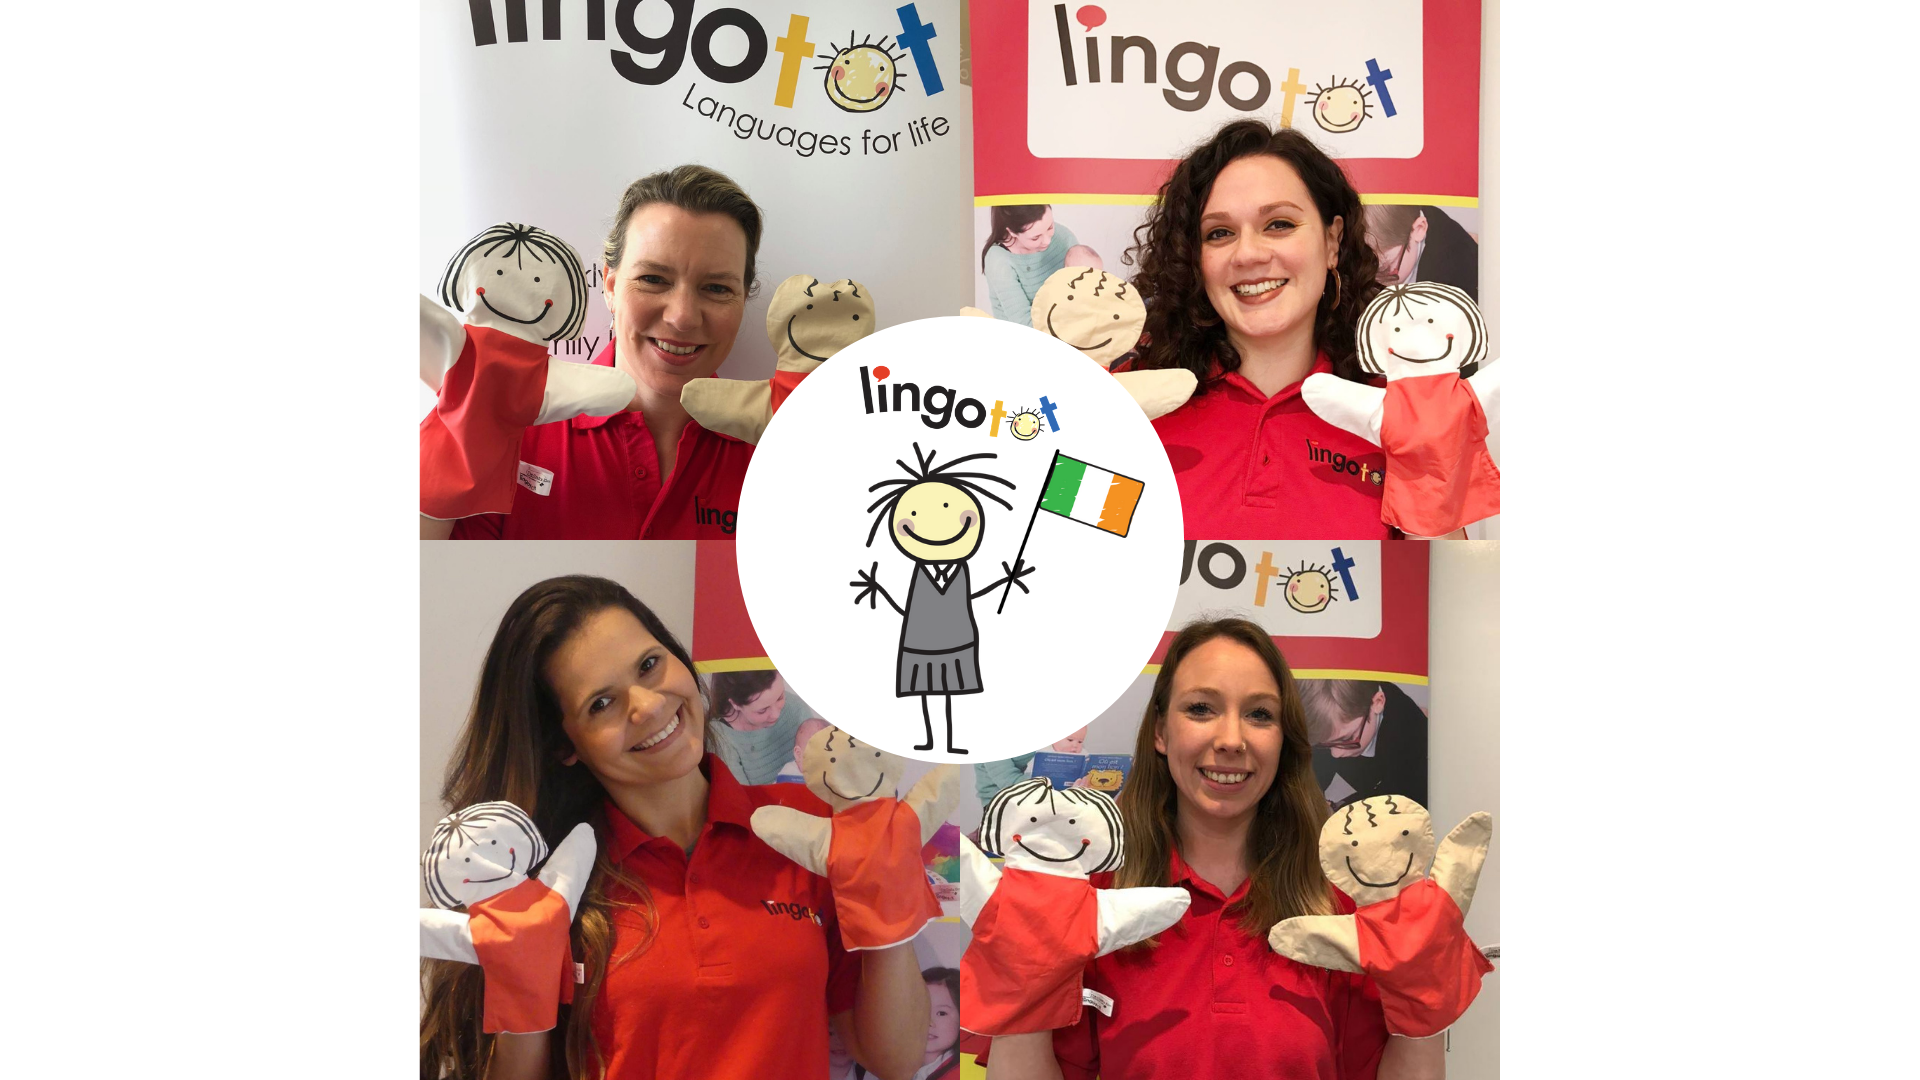 Lingotot continues to expand across Ireland from Dublin to Limerick and Galway